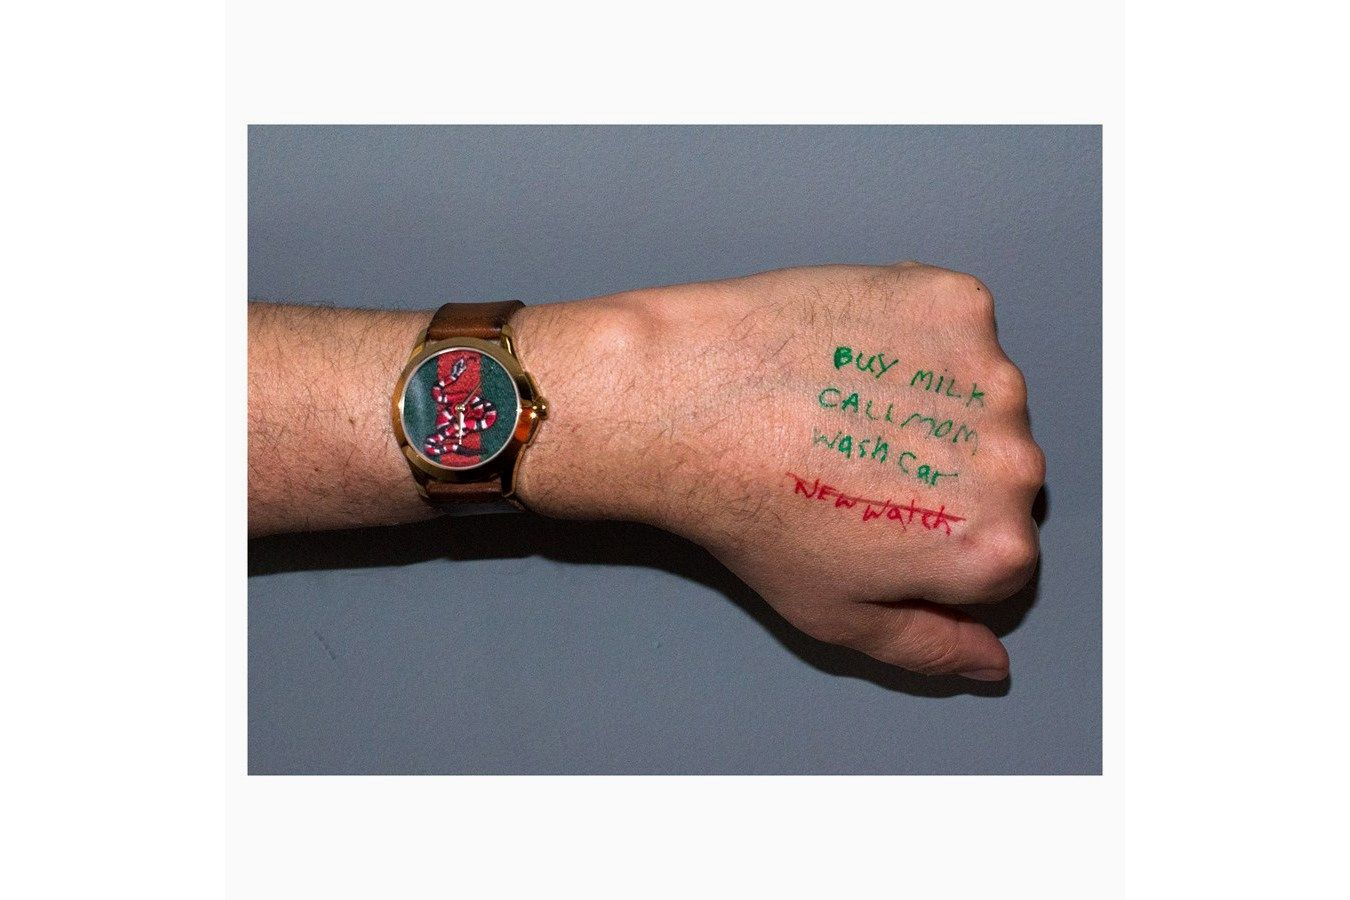 Gucci Memes Watch Collection 100109 Bracoeur Style And Posture